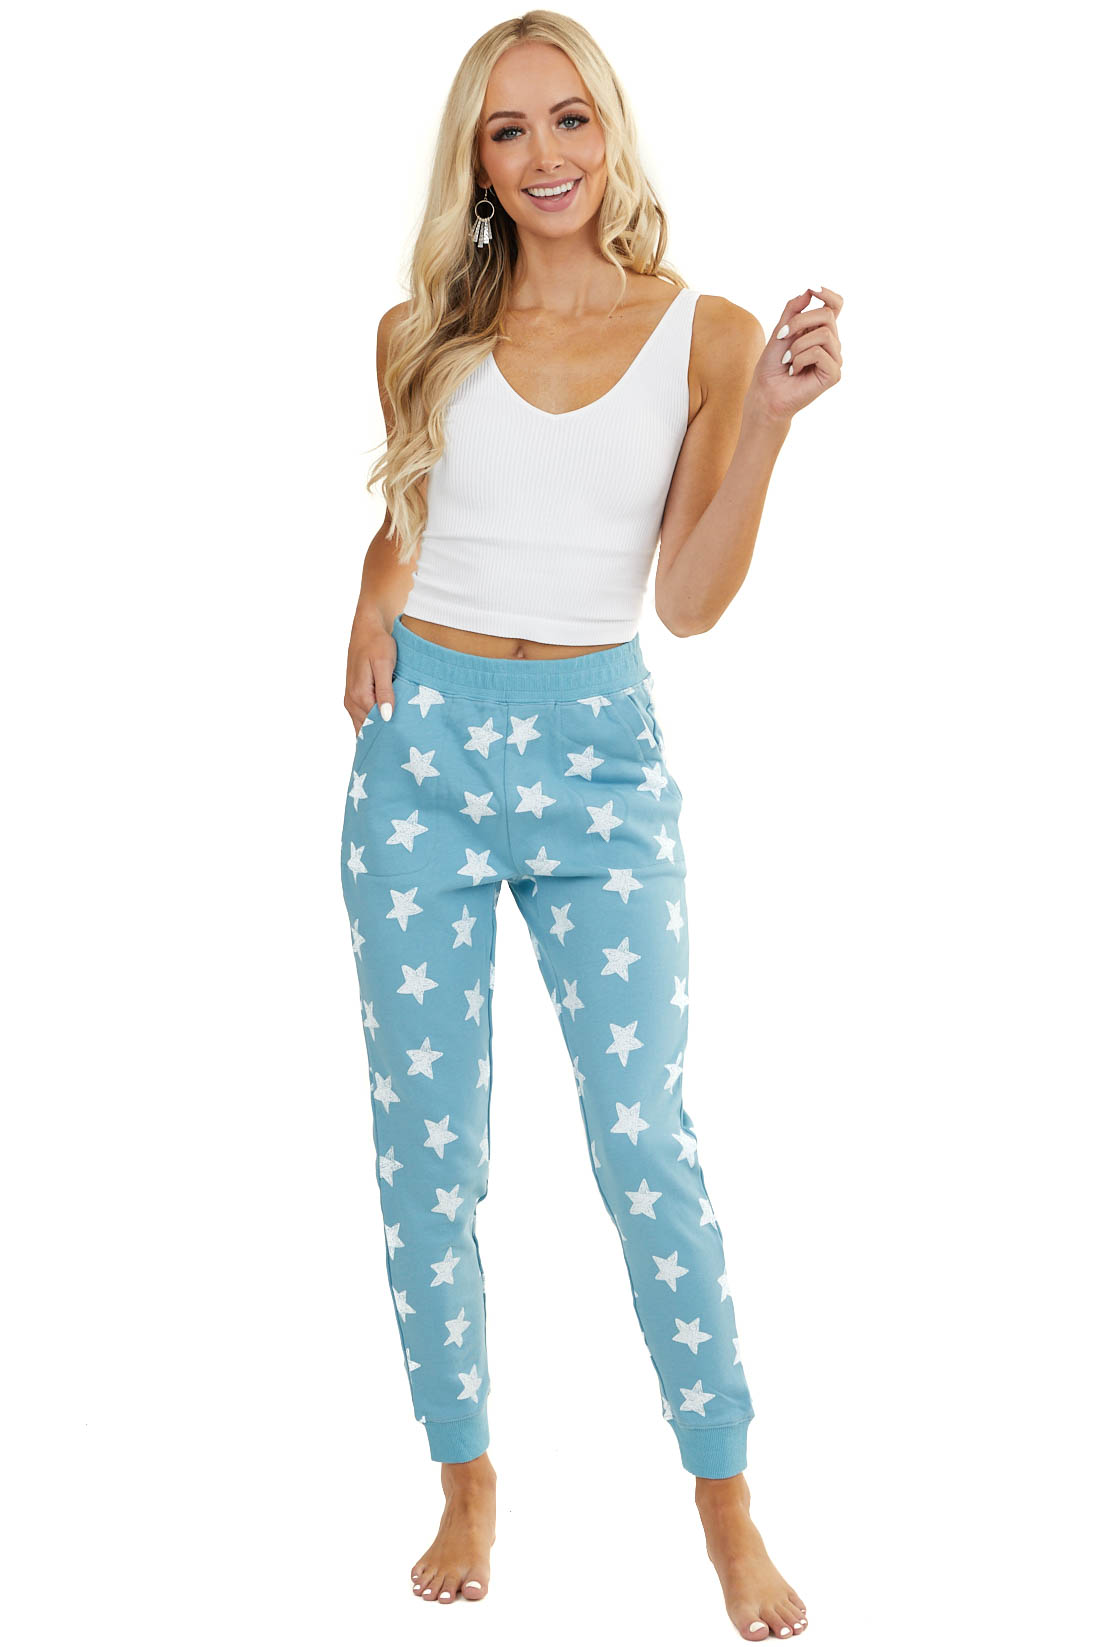 Powder Blue Star Print Elastic Waist Joggers with Pockets